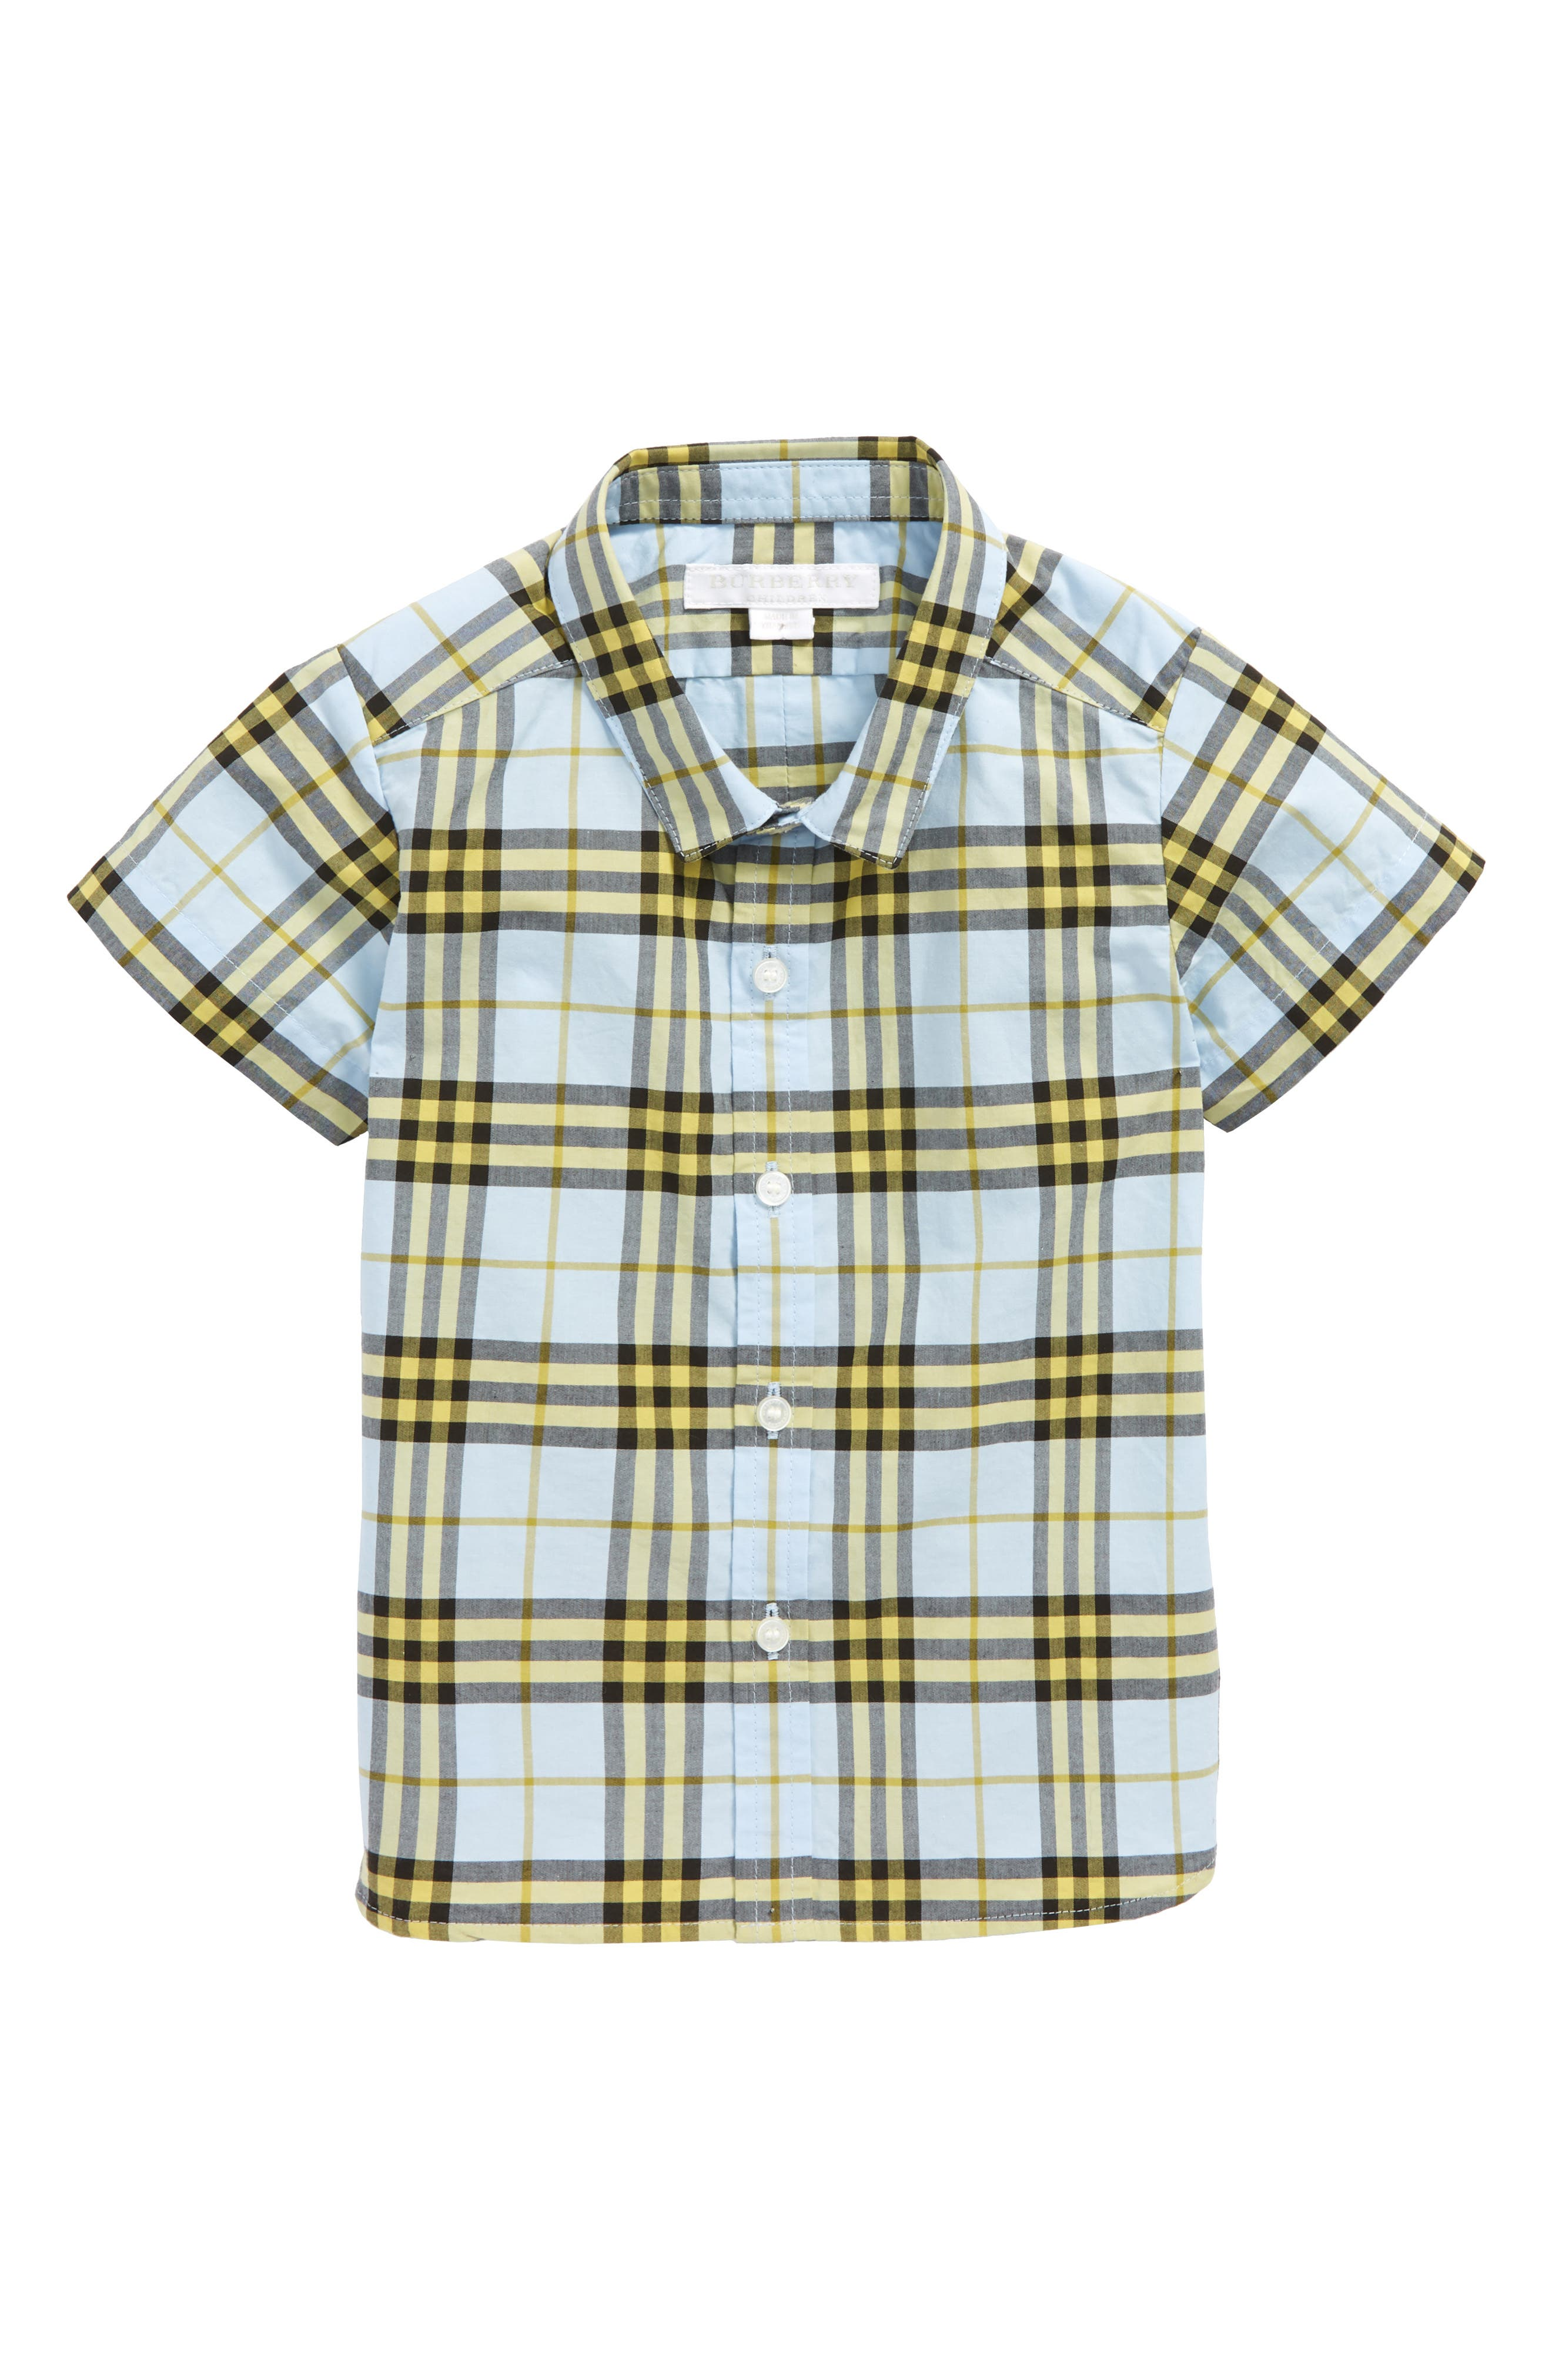 Burberry Clarkey Plaid Woven Shirt (Baby Boys)